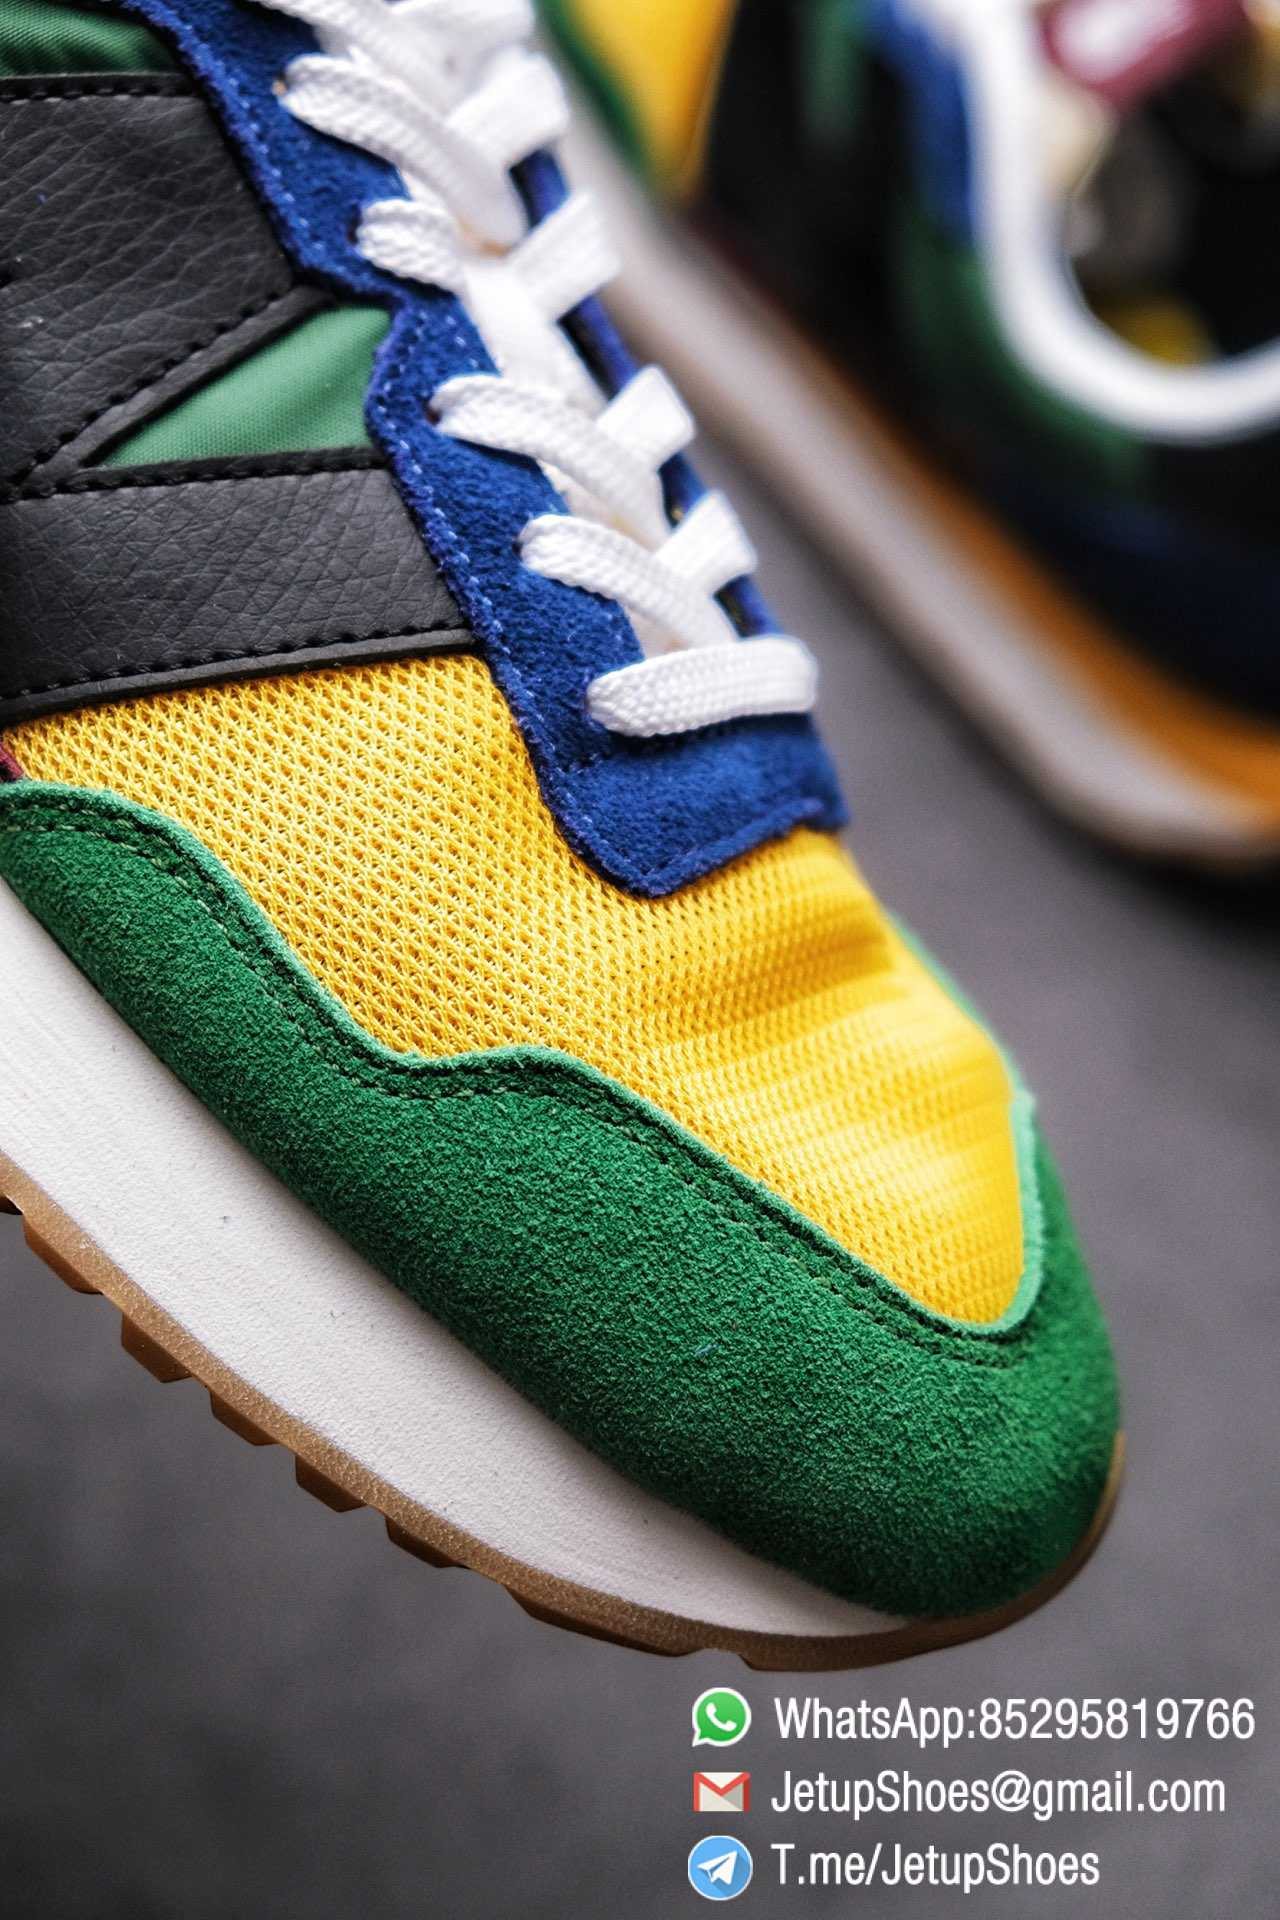 Best Replica New Balance 237 Green Blue Yellow Multi Color SKU MS237LB1 High Quality Fake Running Shoes 06